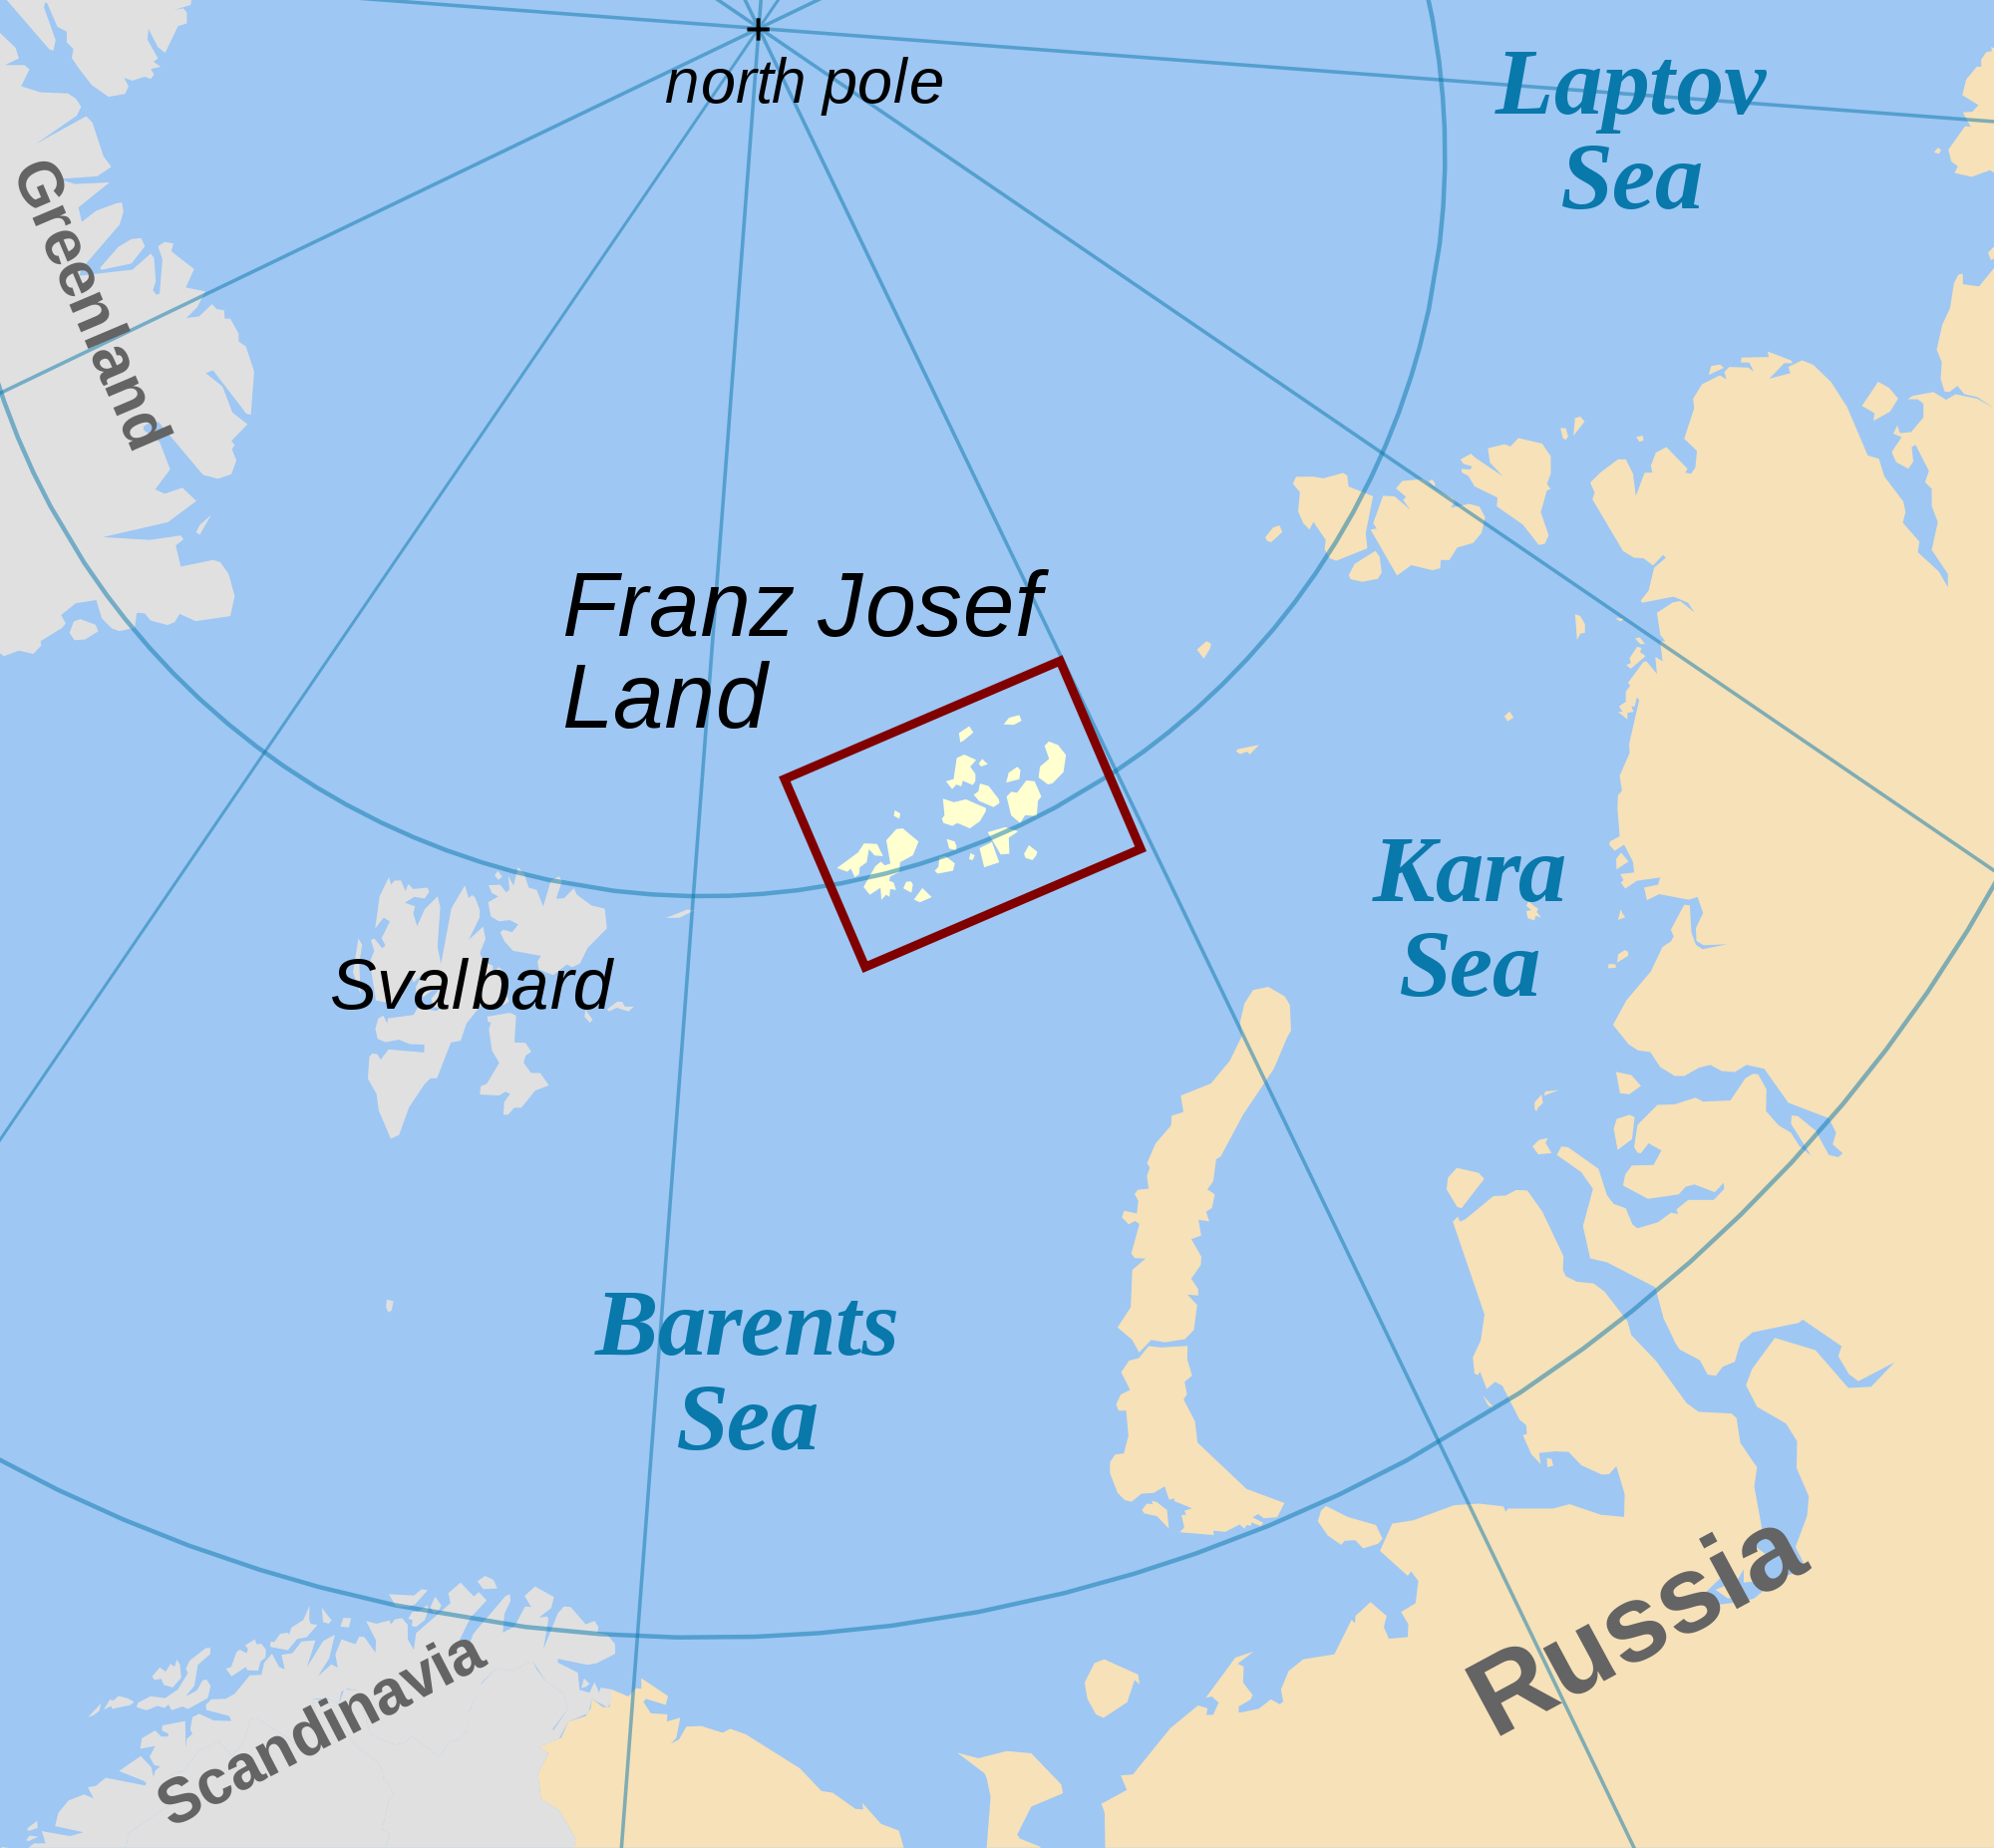 Franz Josef Land location